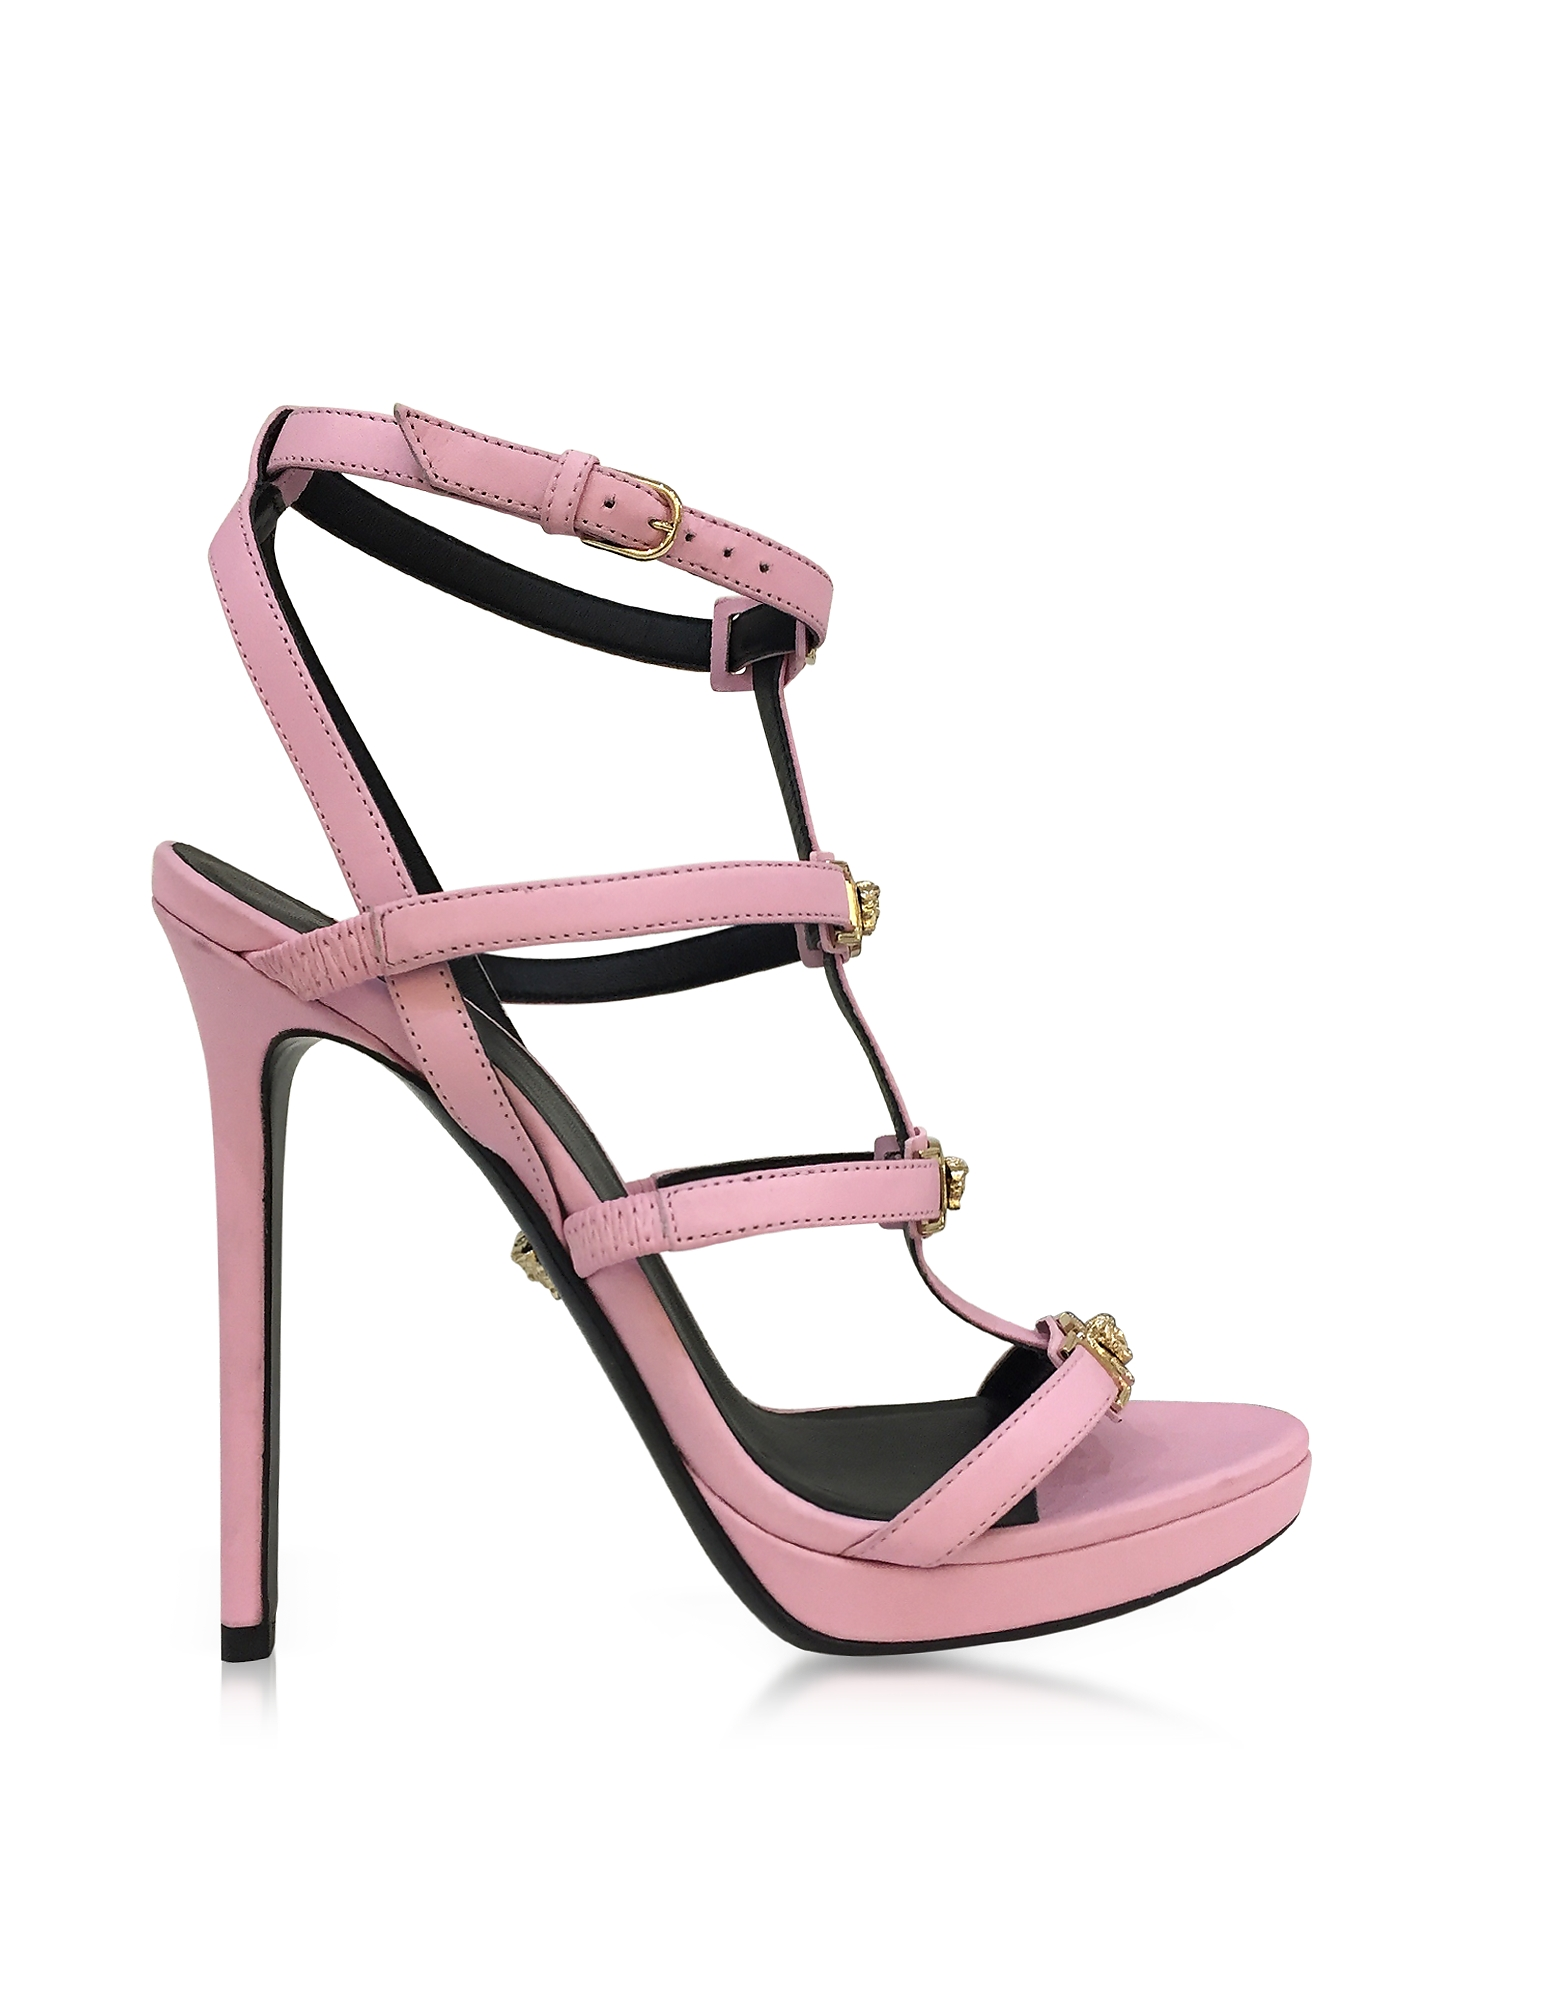 Versace Shoes, Pink Leather Sandal w/Light Gold Medusa